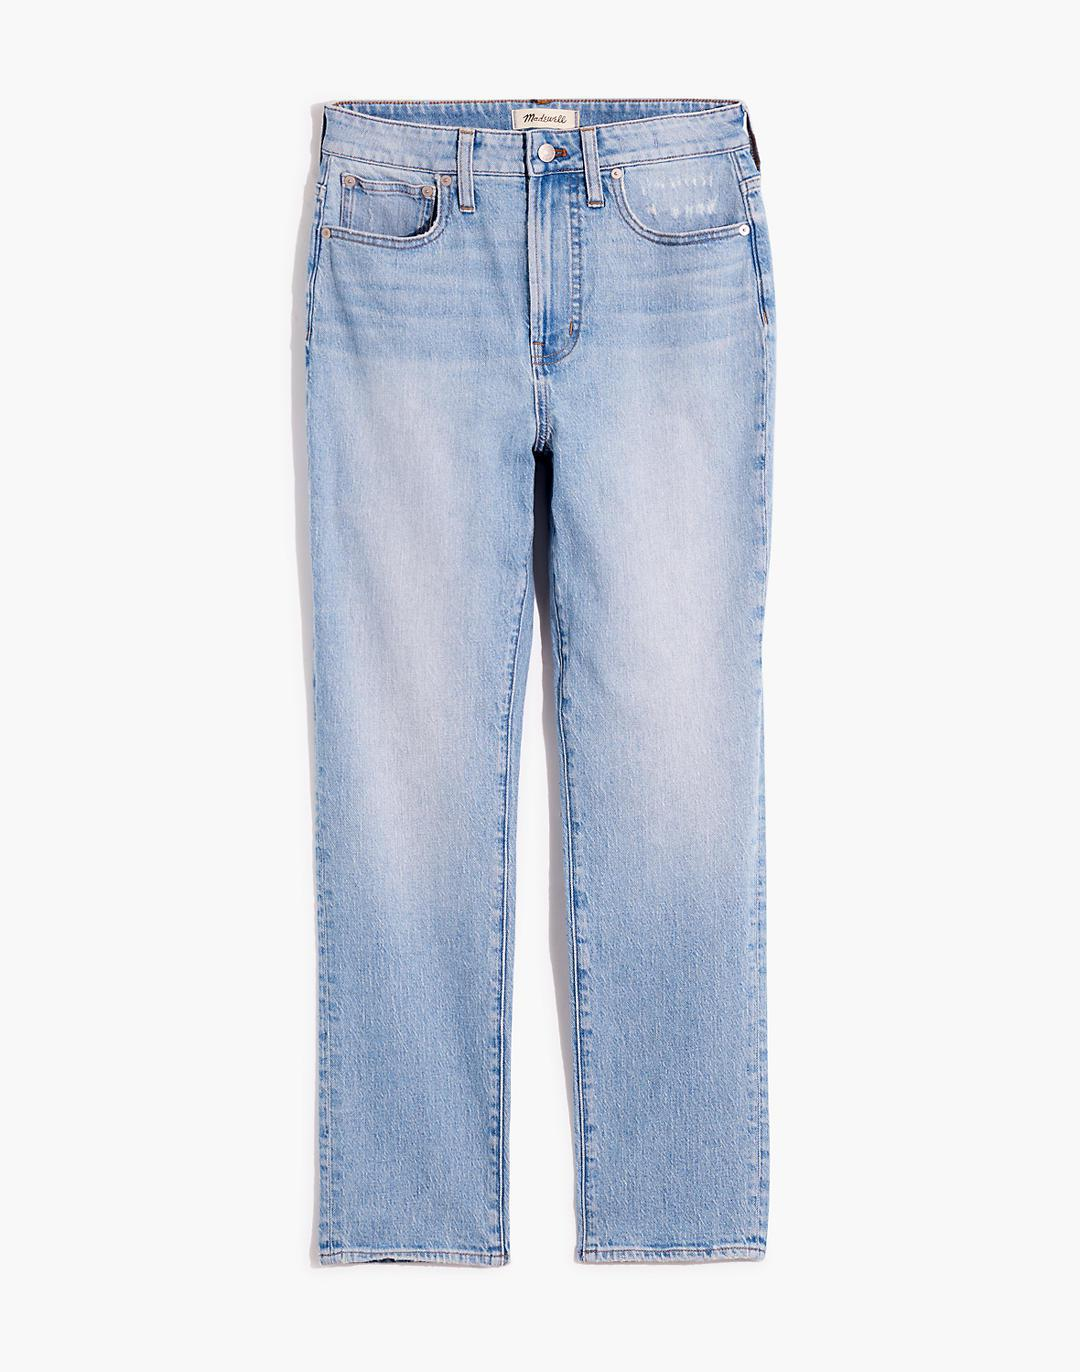 The Curvy Perfect Vintage Jean in Fiore Wash 4